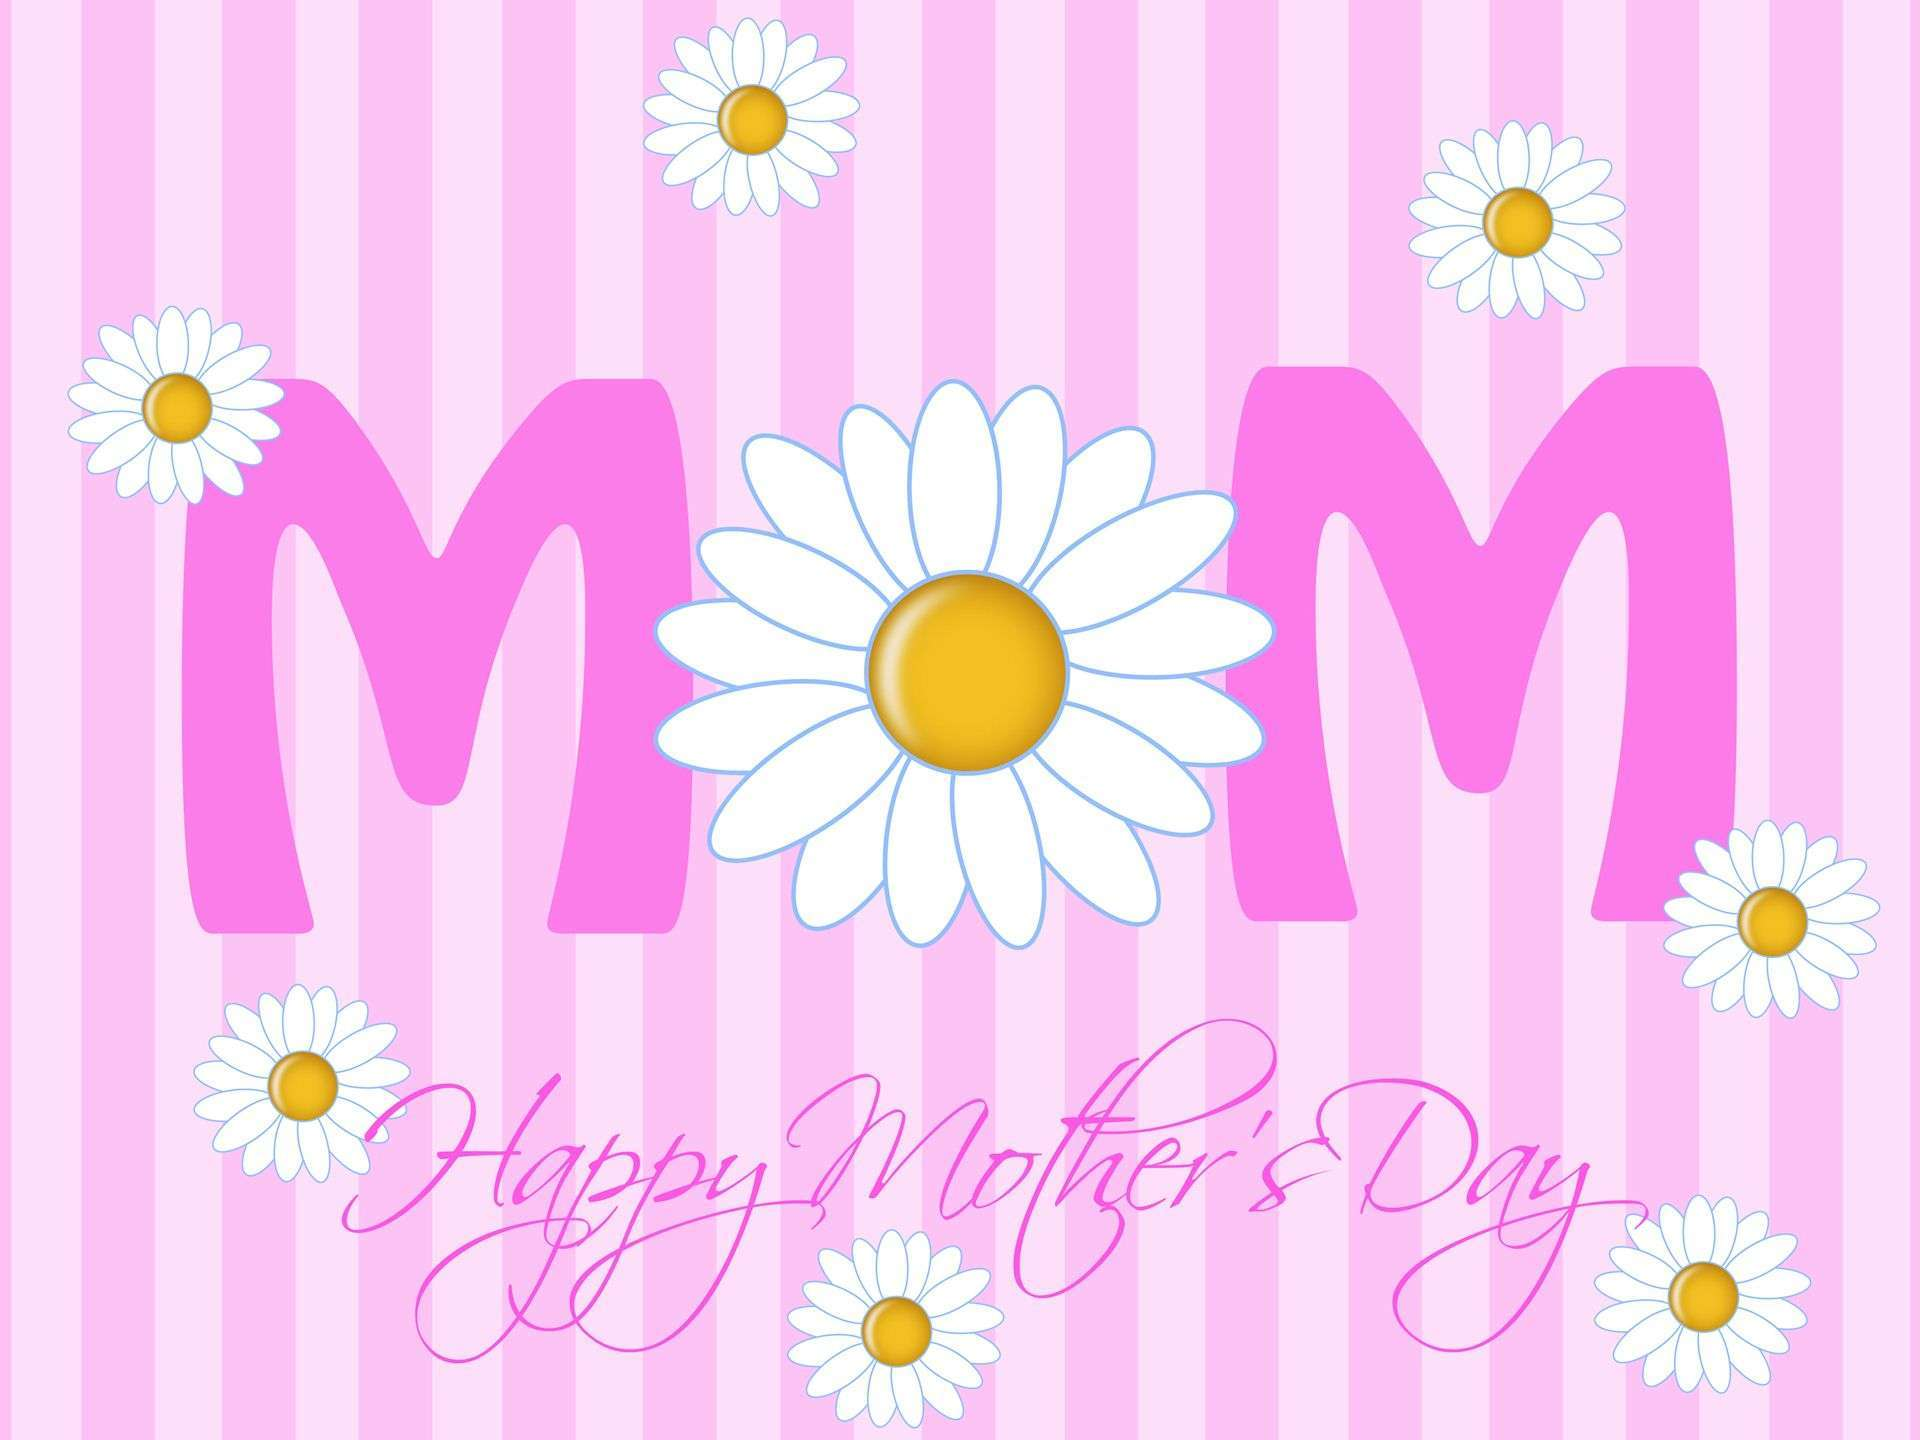 Mothers Day Images 2015 1920x1440